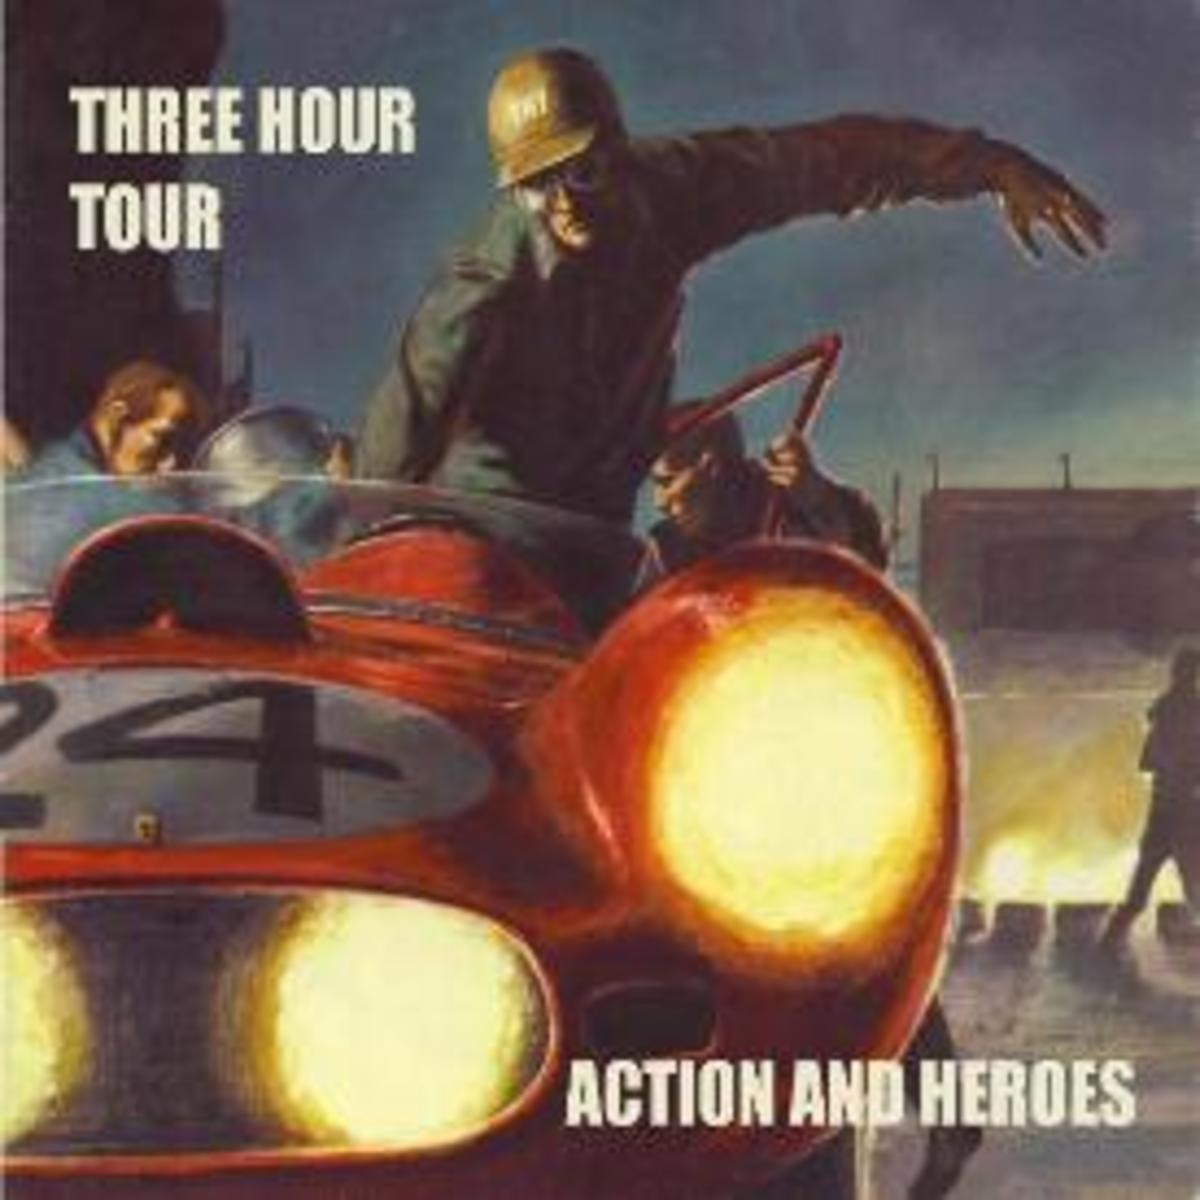 THT_ACTION_AND_HEROES-600x539-275x275